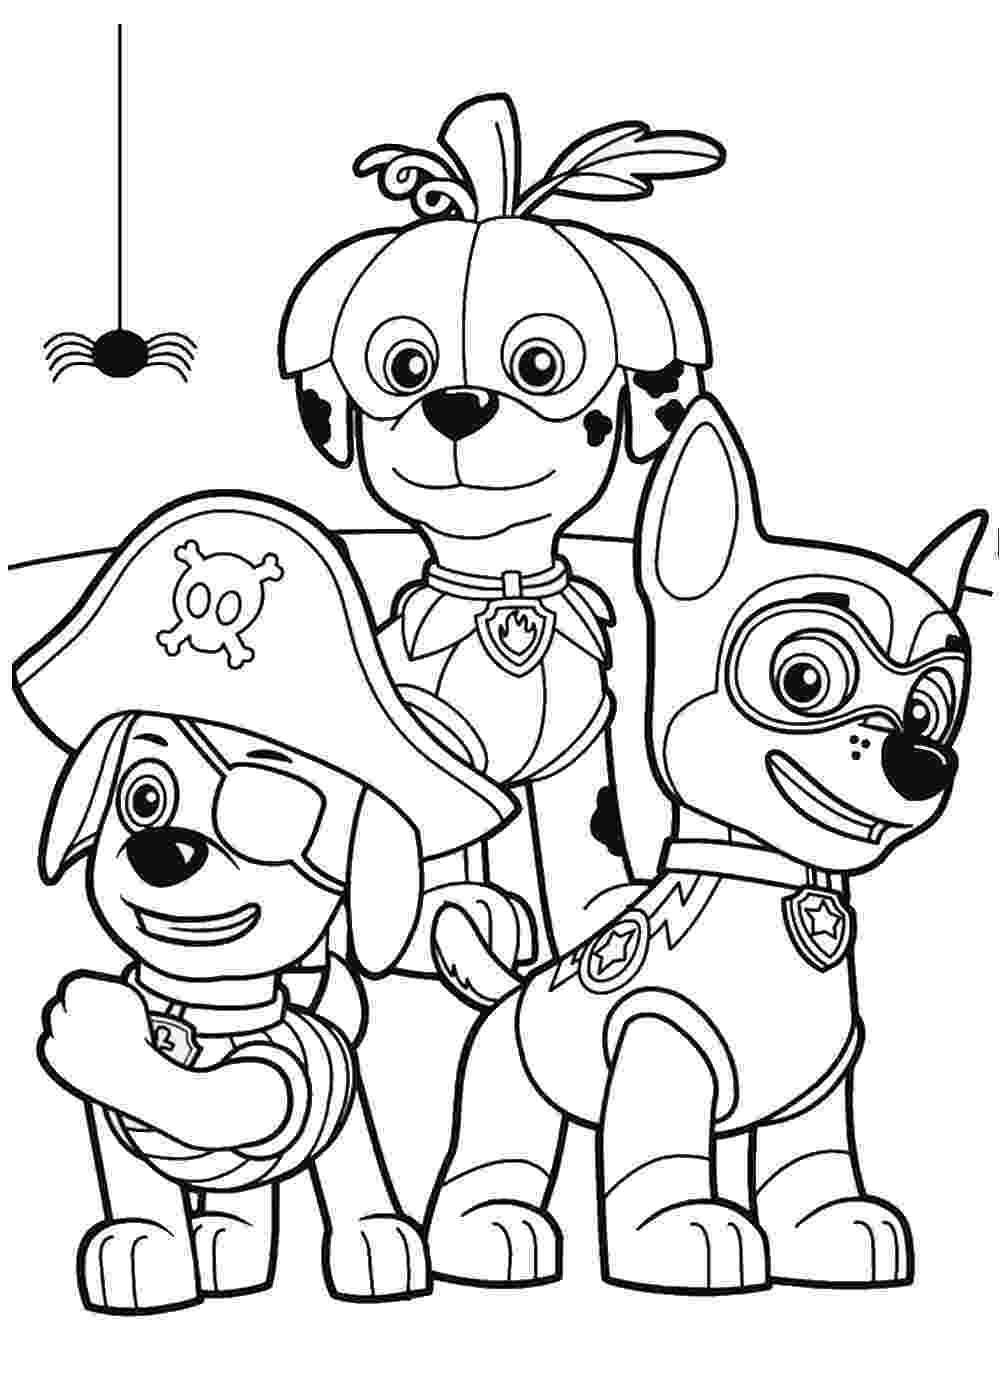 coloring pages of paw patrol paw patrol coloring pages of coloring patrol paw pages